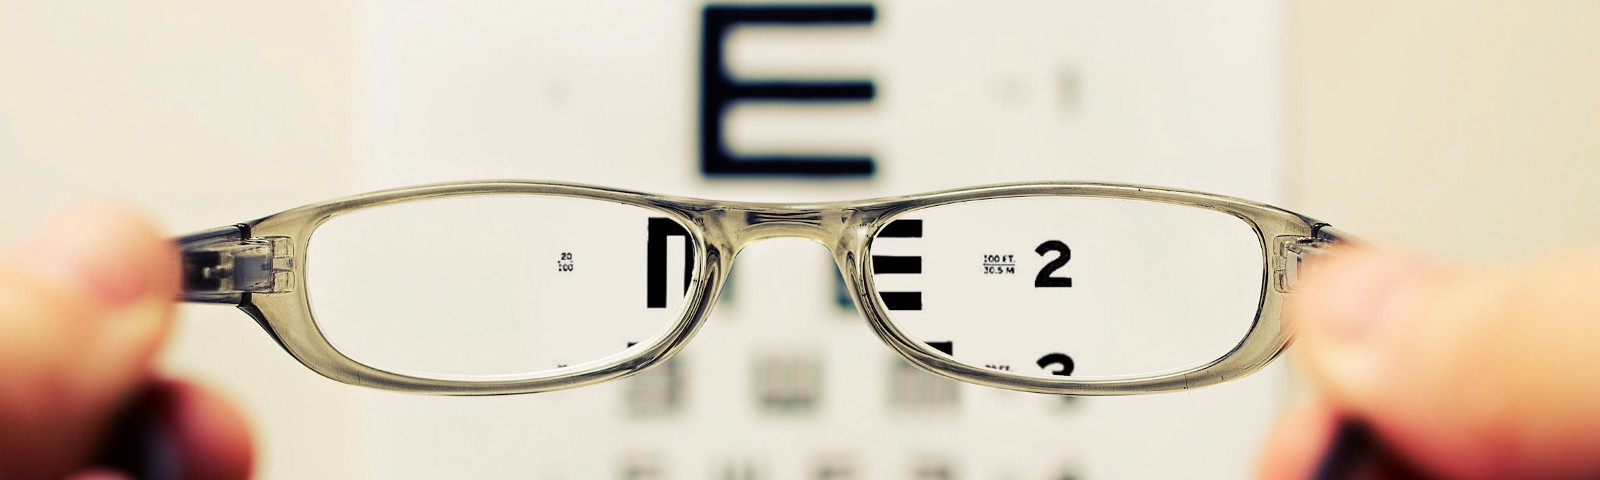 Person holding glasses in front of an optometrists eye chart